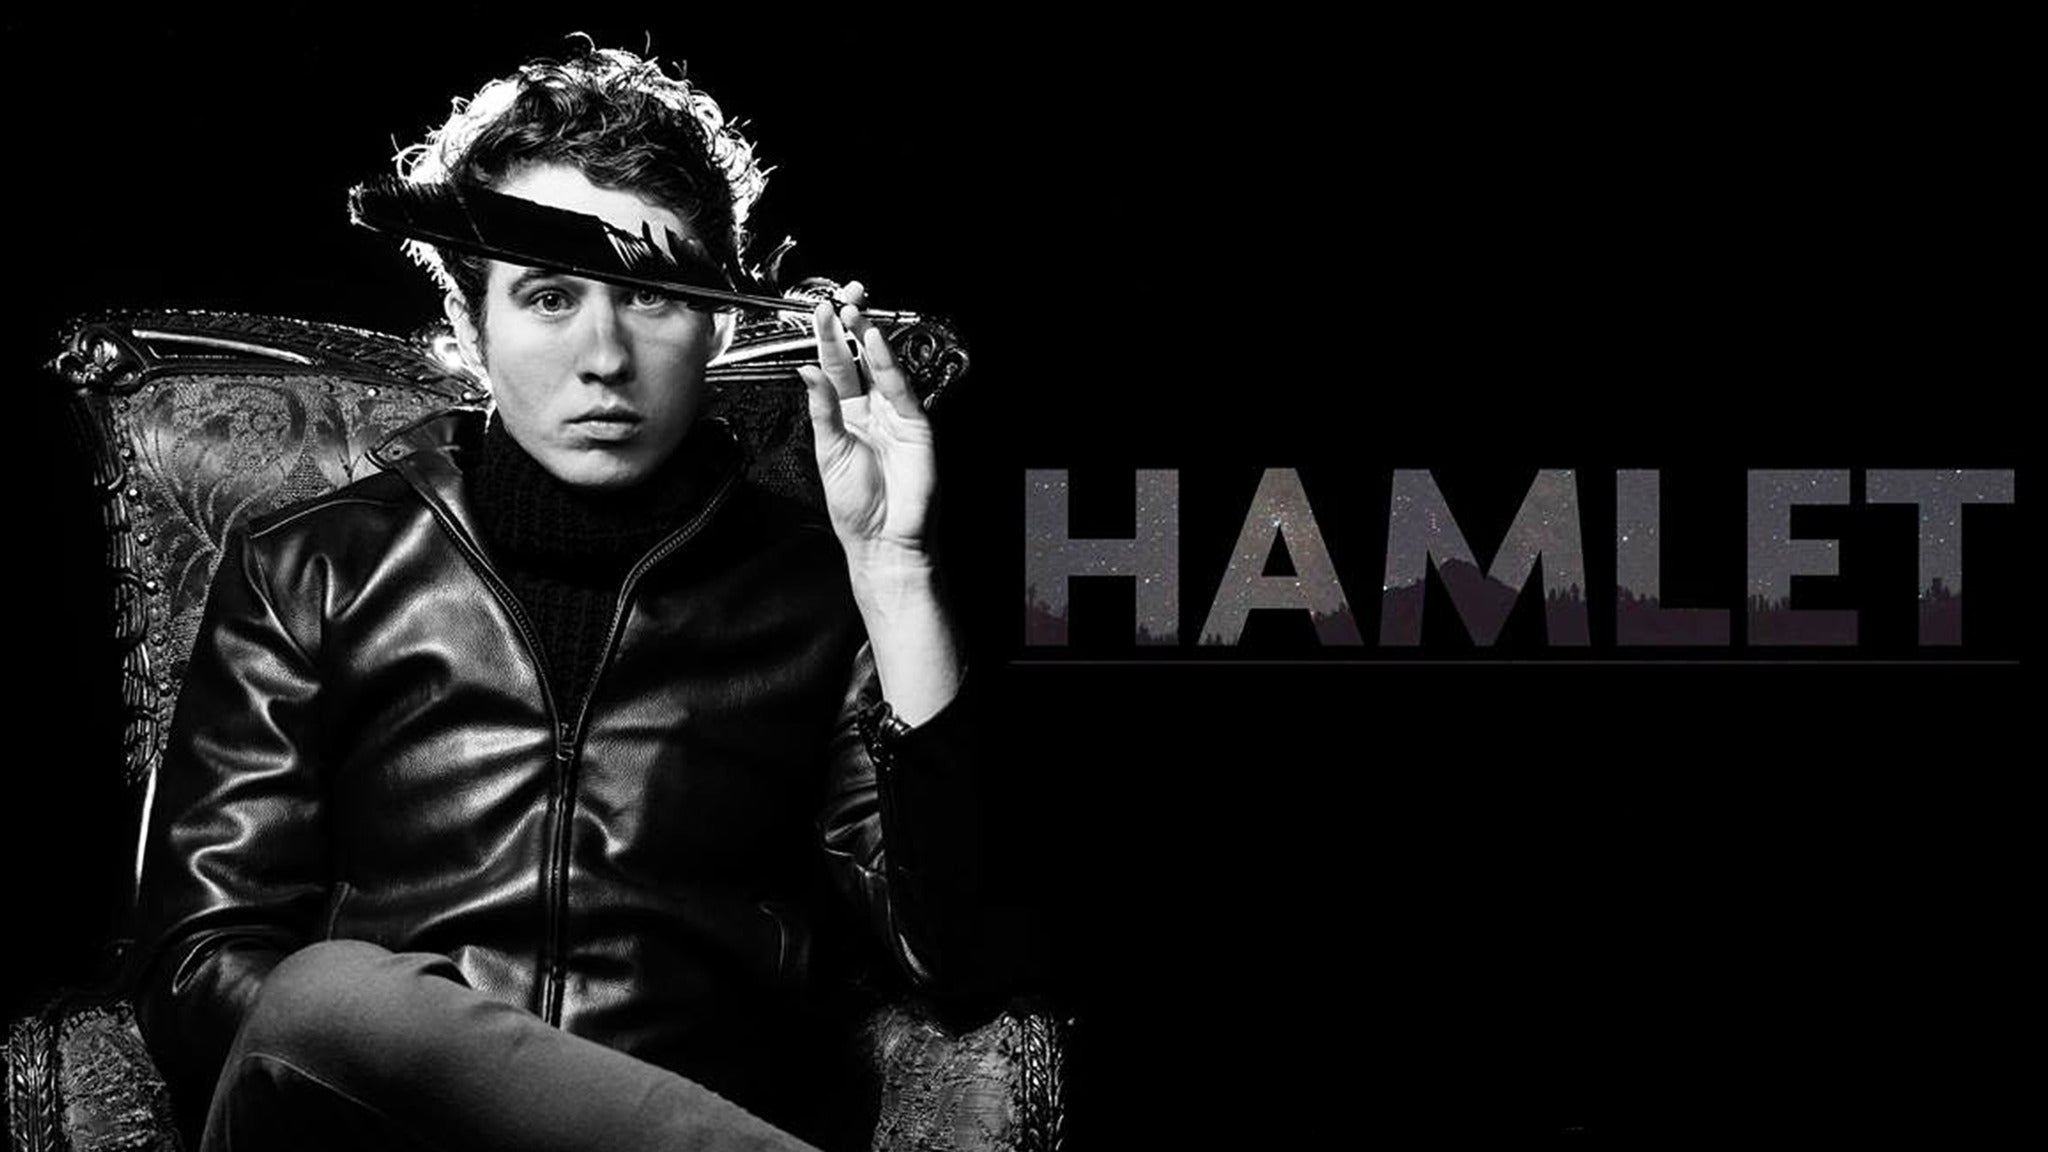 SORRY, THIS EVENT IS NO LONGER ACTIVE<br>Hamlet at Chicago Shakespeare Theater - Chicago, IL 60611